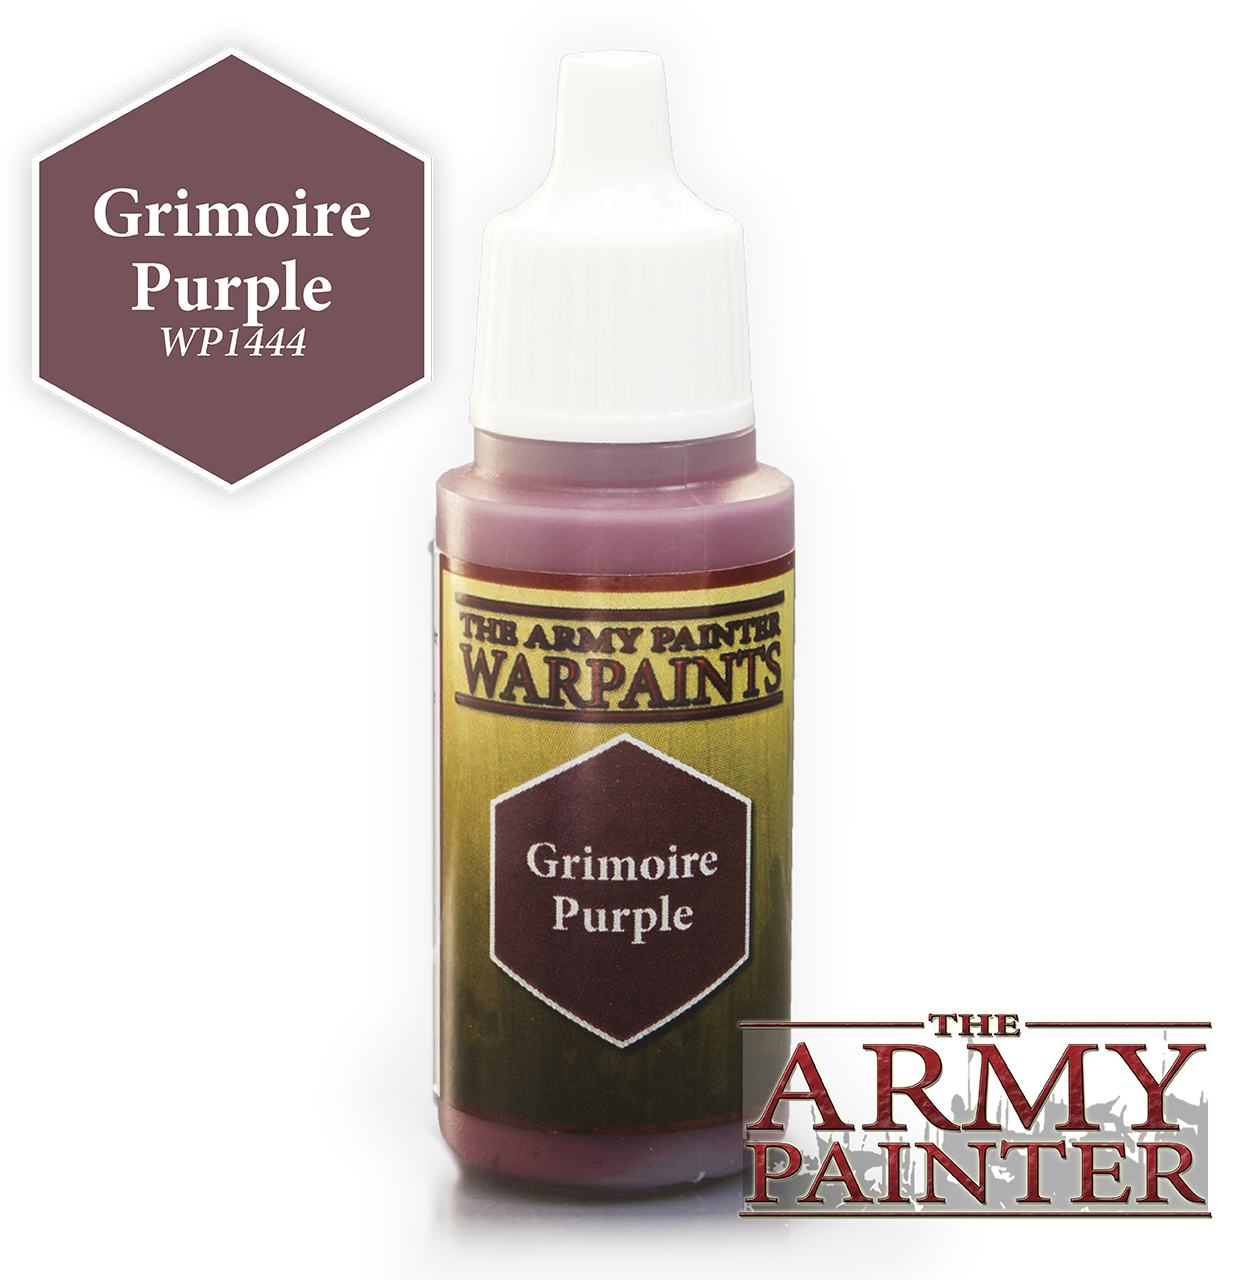 The Army Painter Warpaint Grimoire Purple